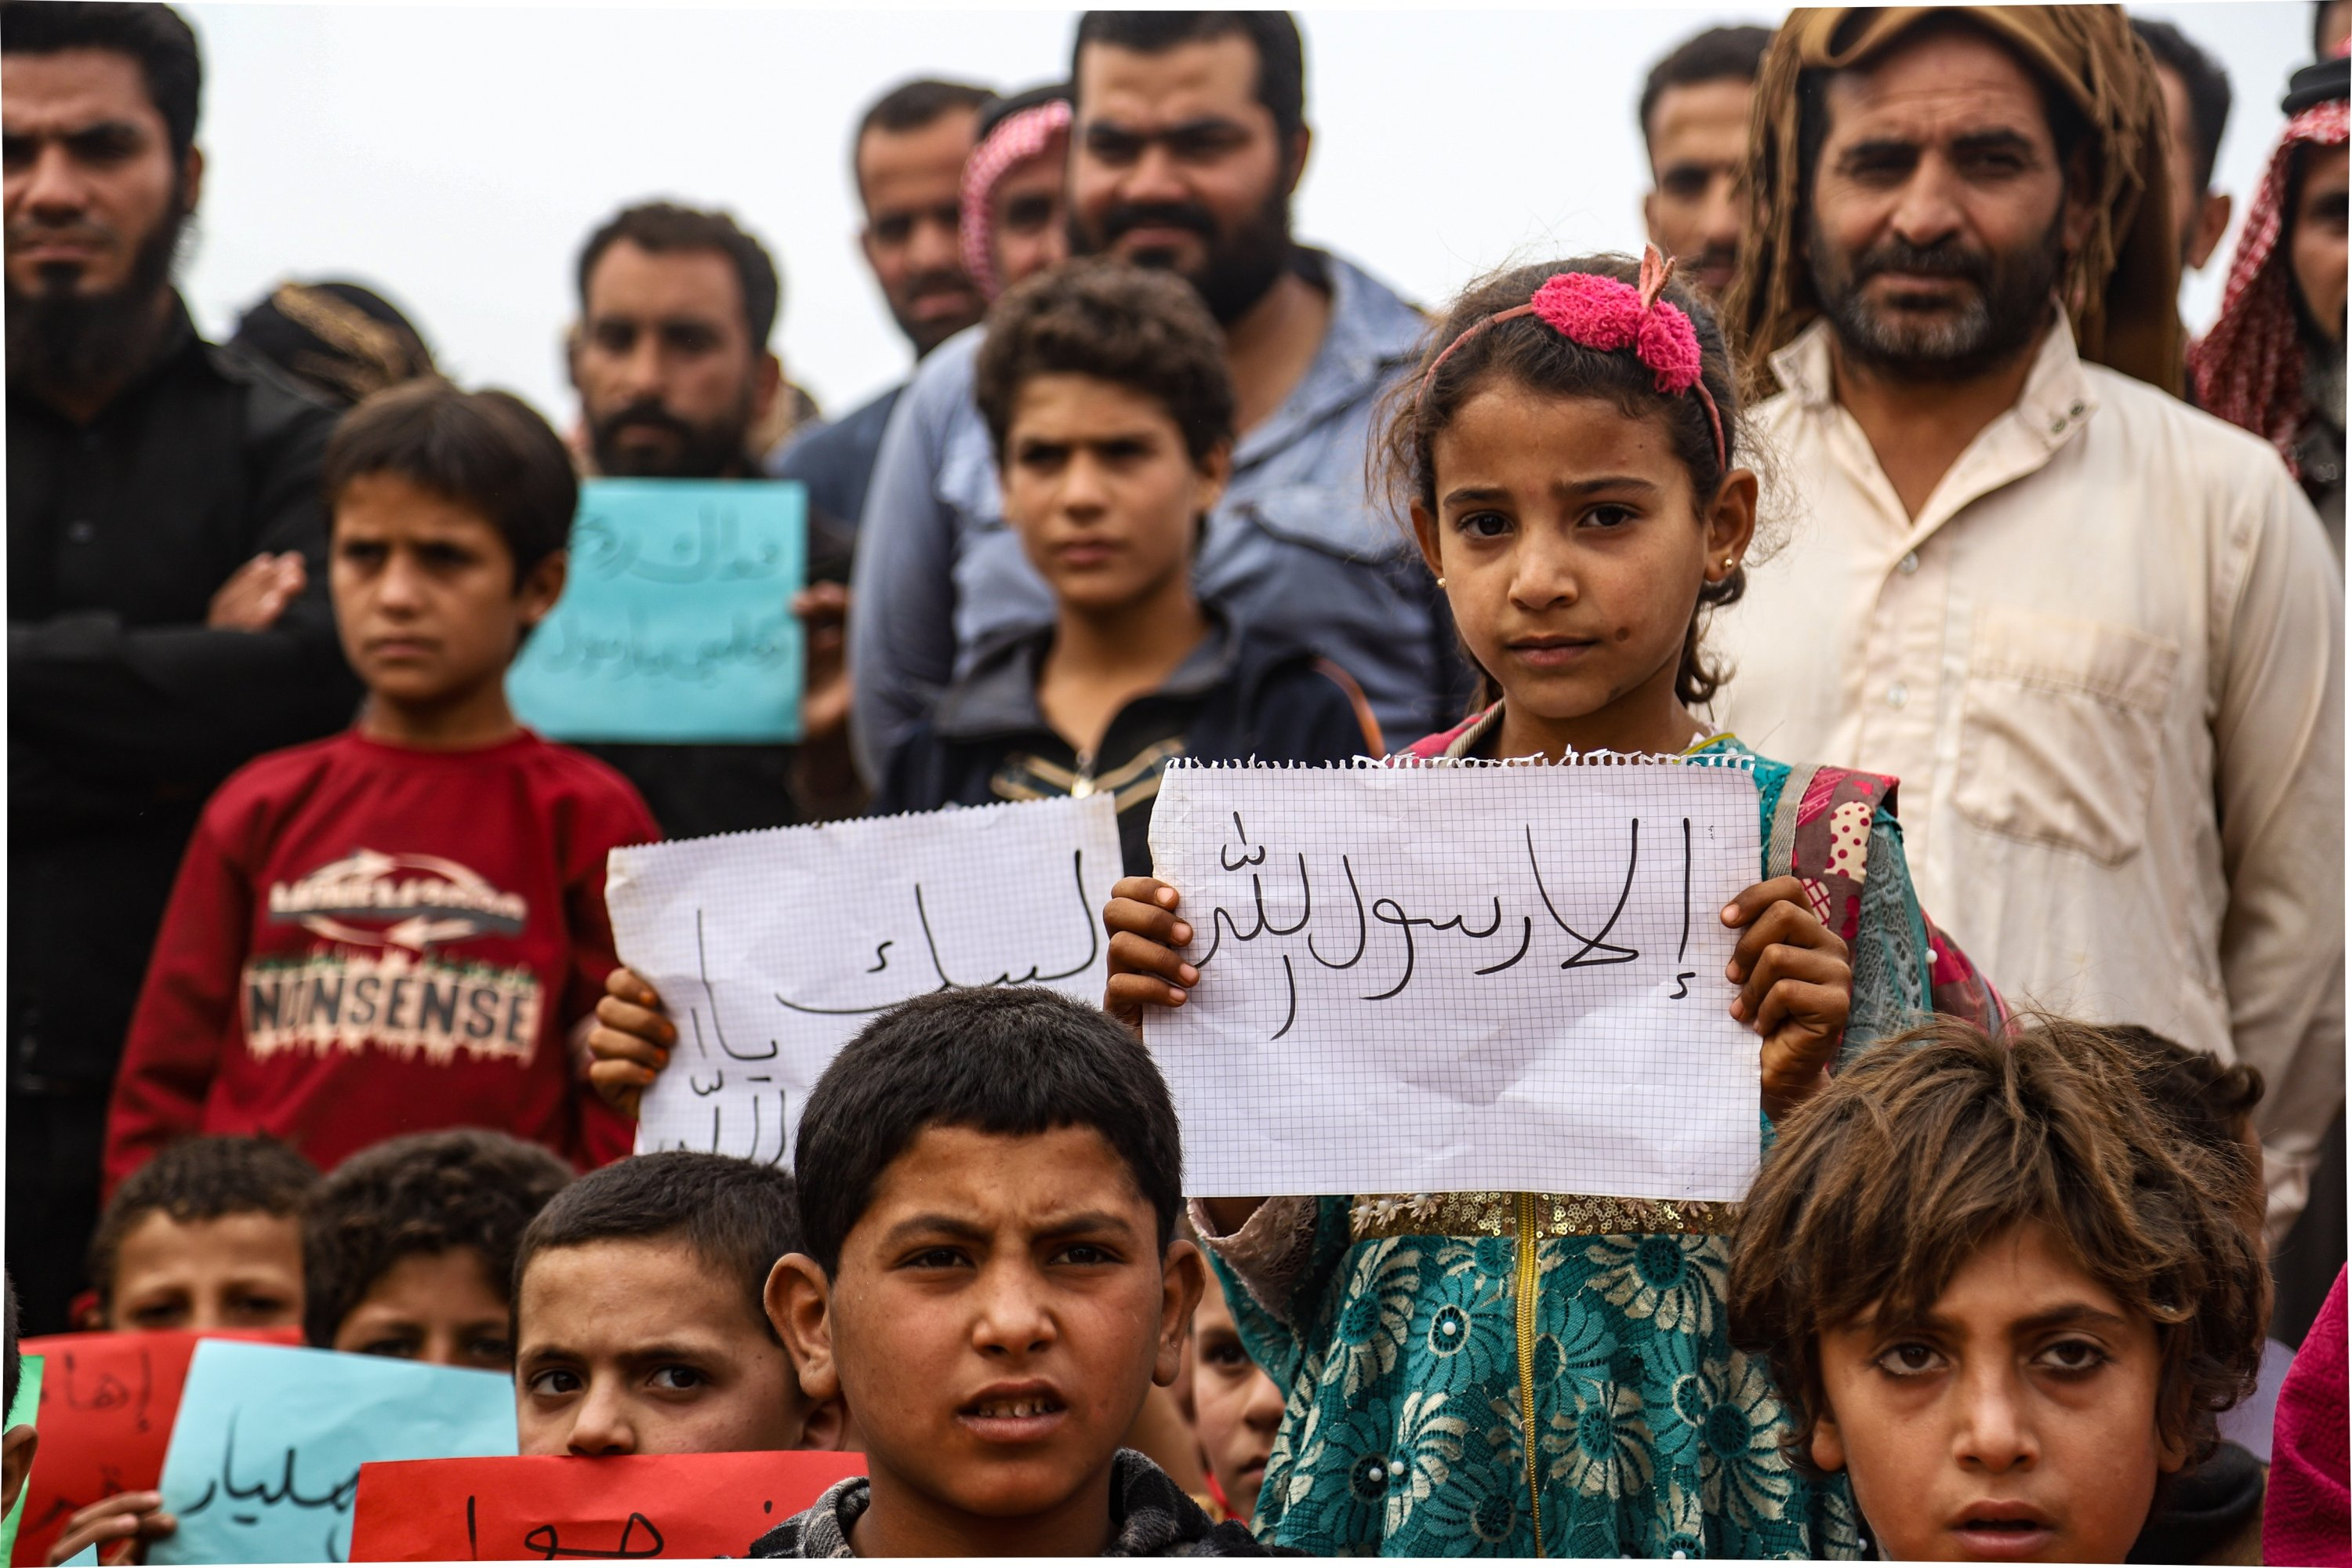 Syrians in Idlib protest Macron's remars with banners writing